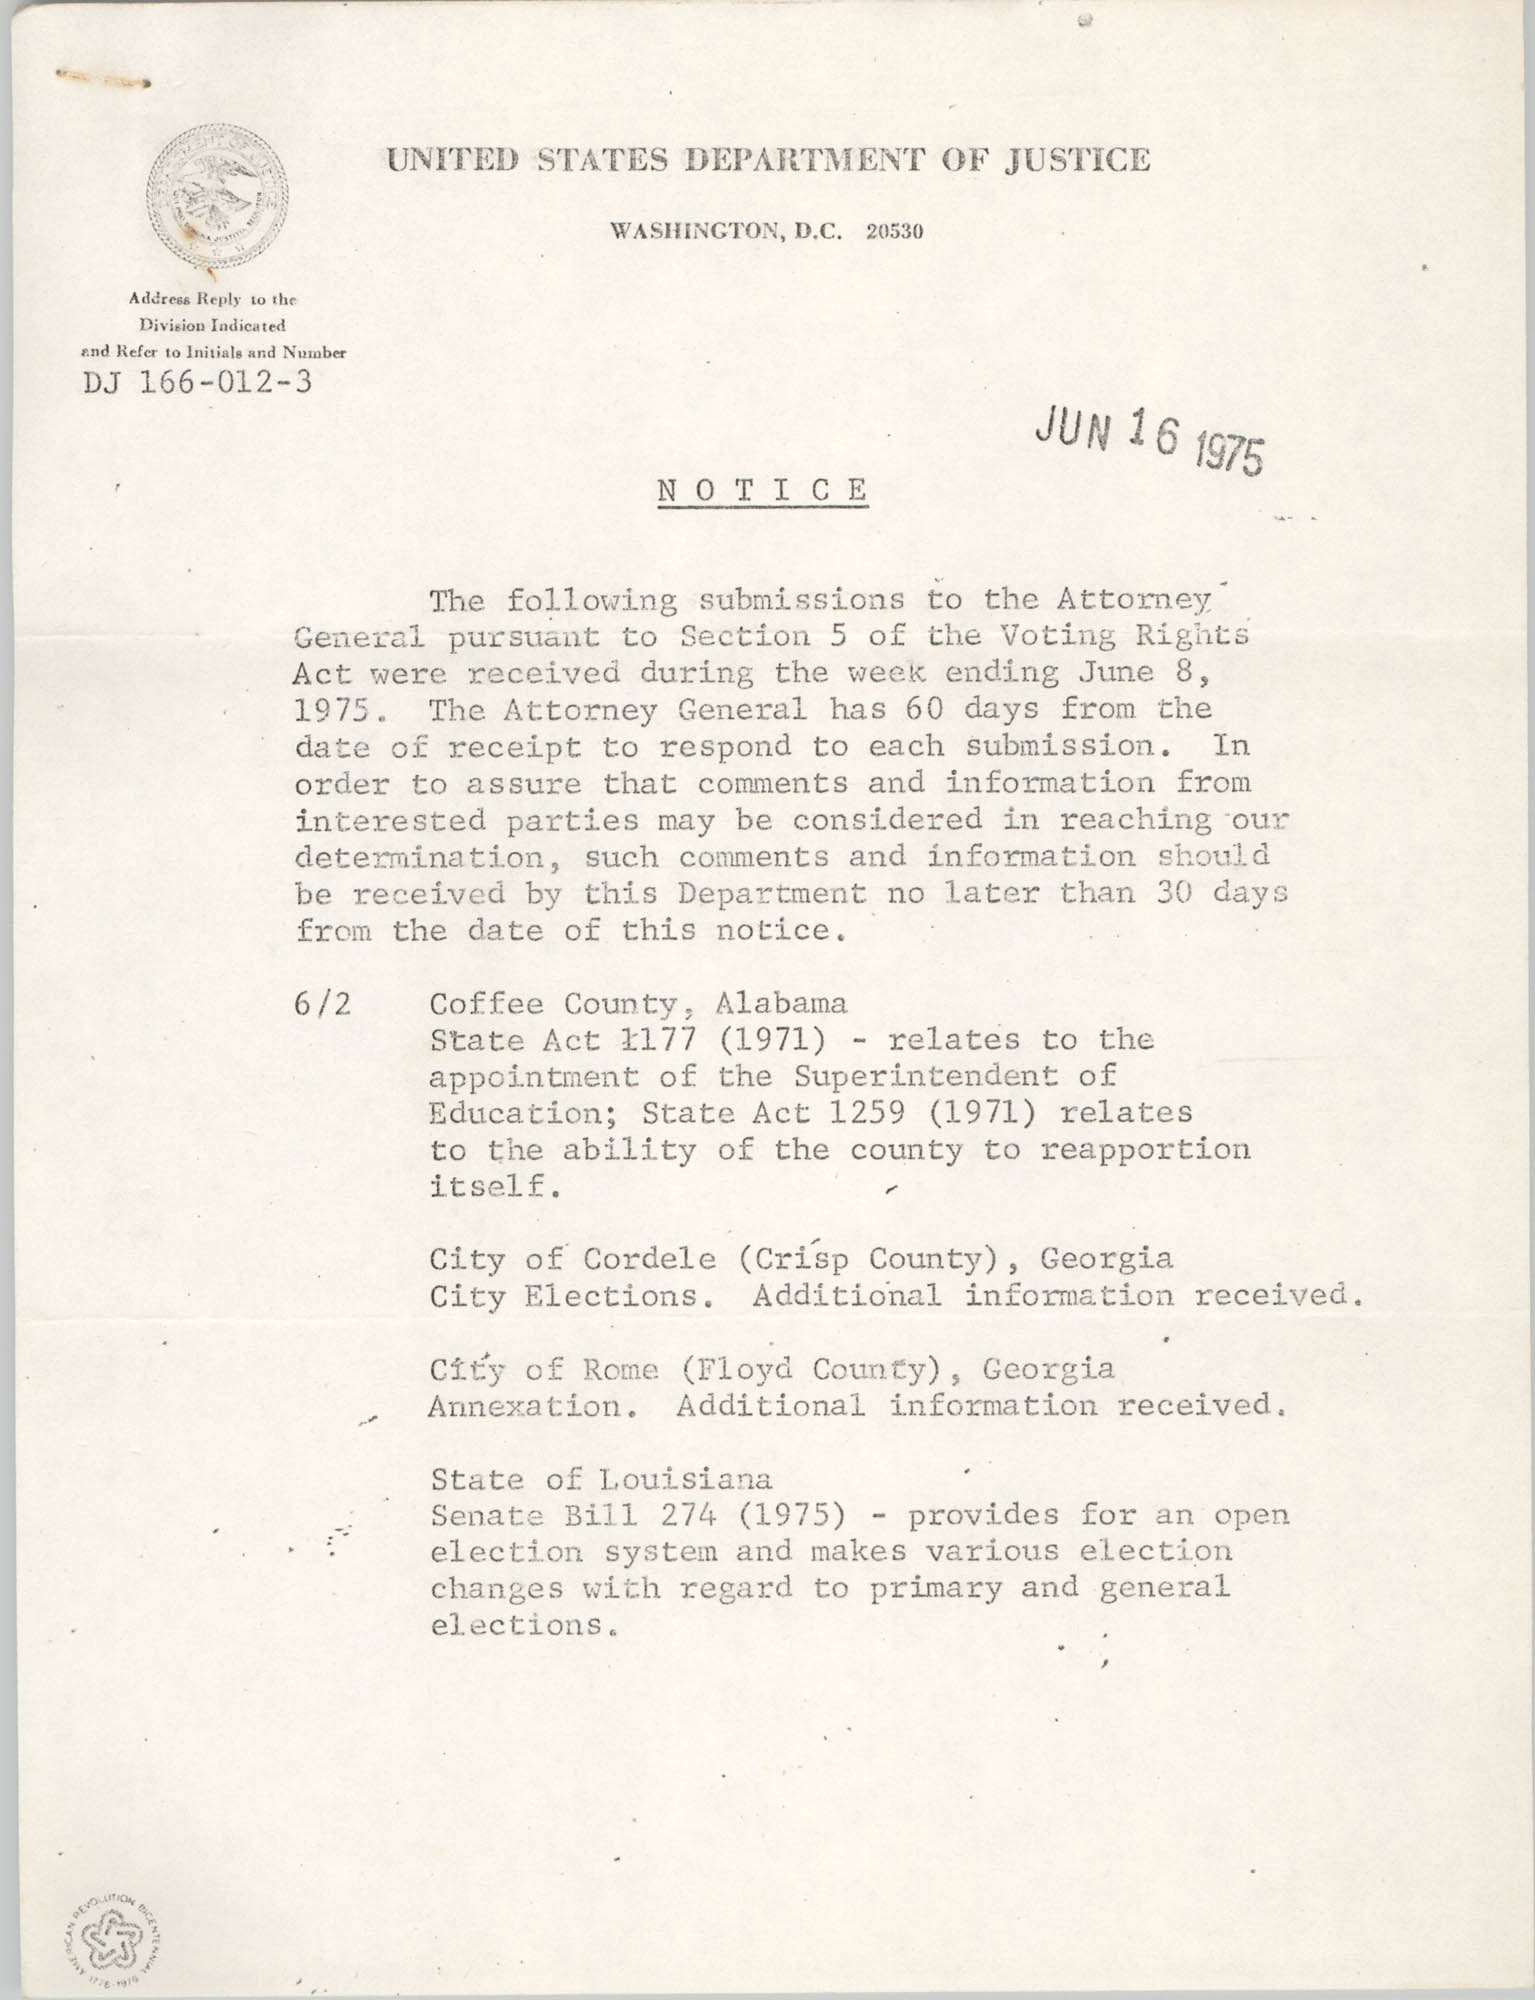 United States Department of Justice Notice, June 16, 1975